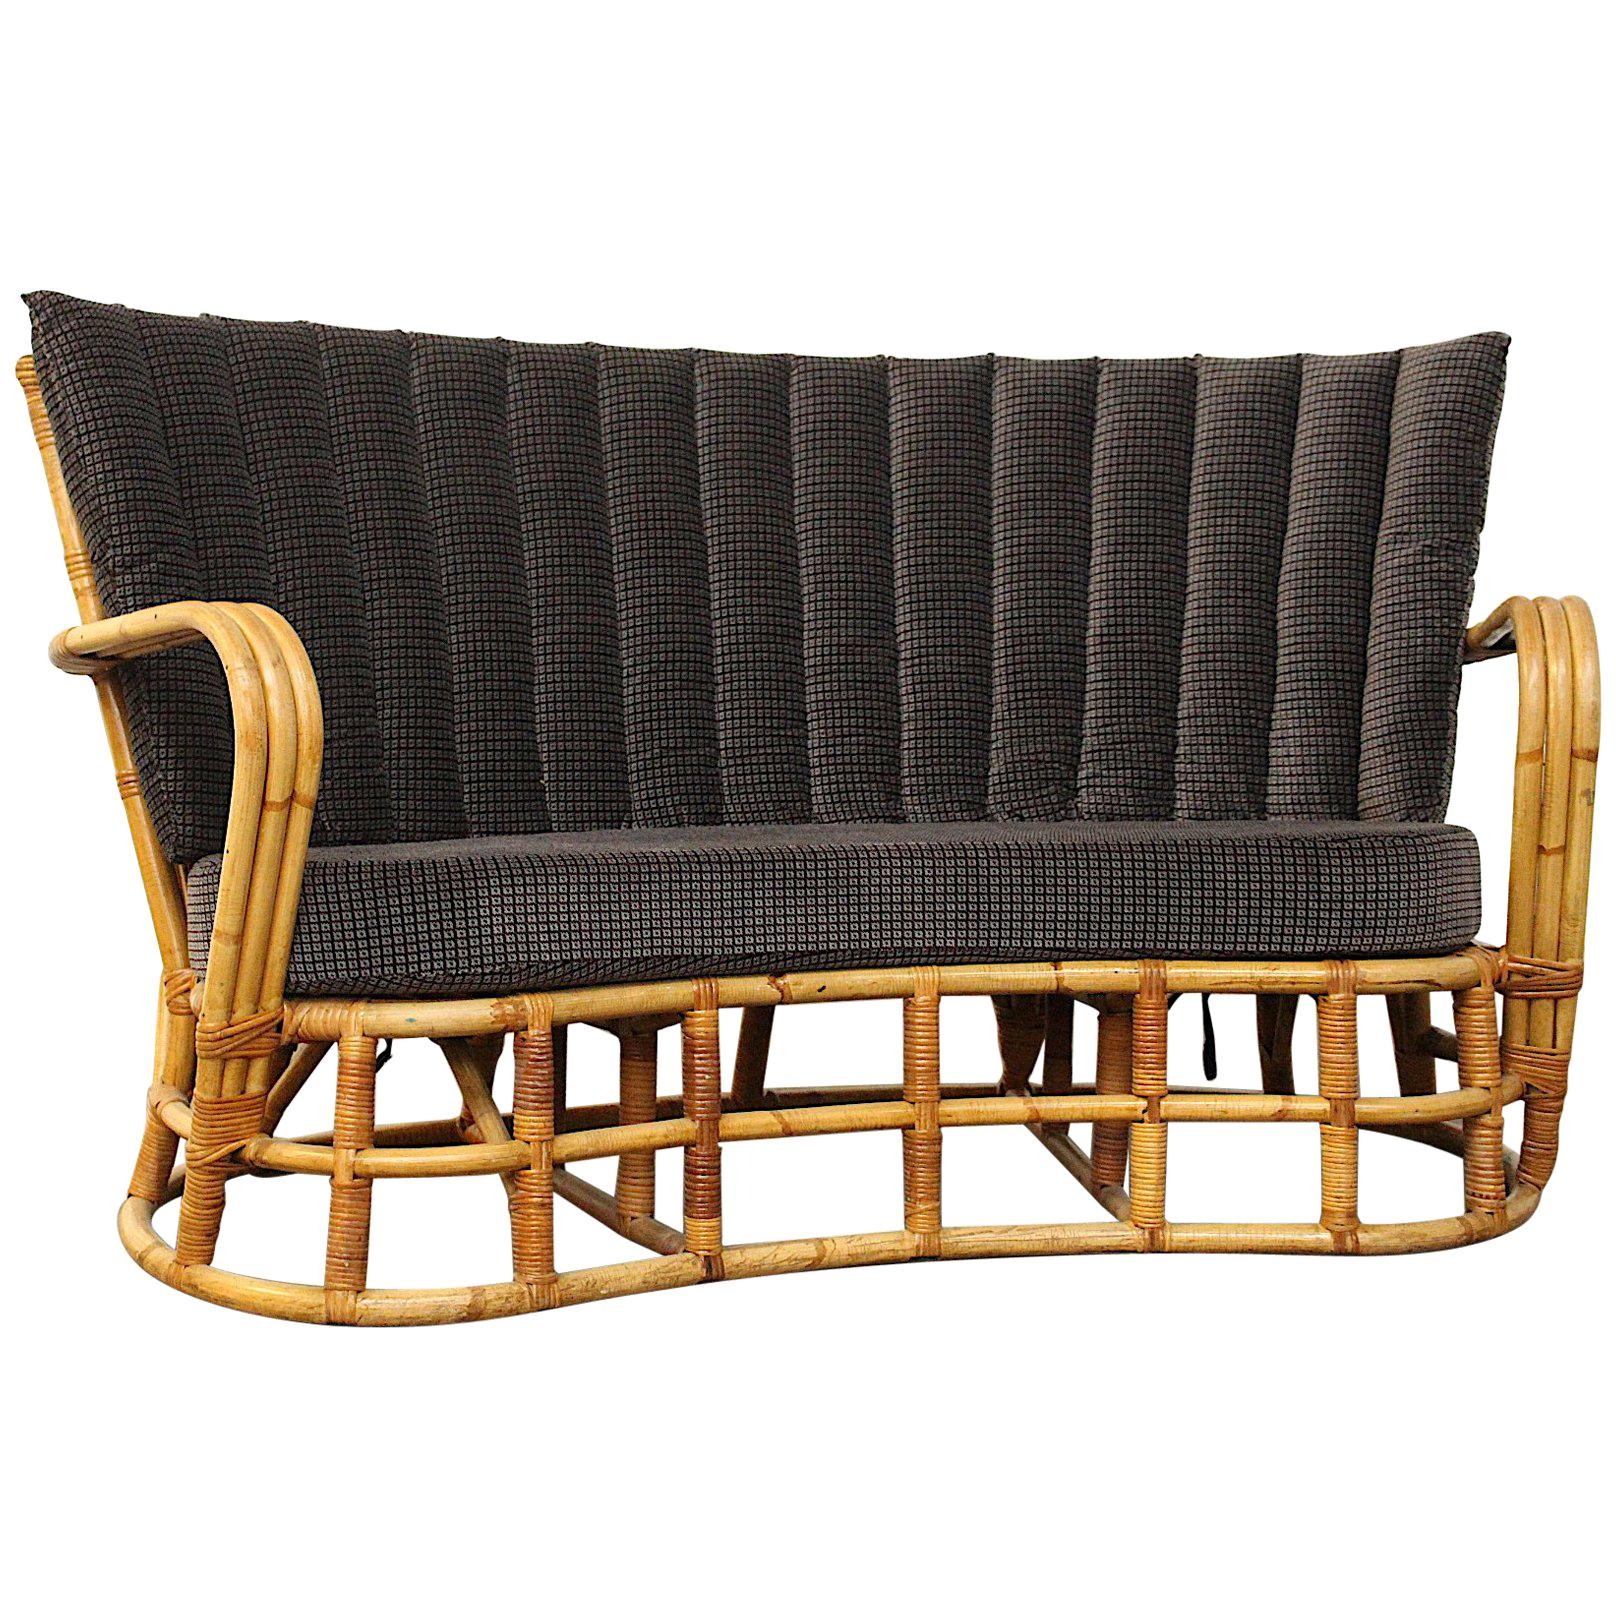 Rattansessel Outdoor Franco Albini Seating 58 For Sale At 1stdibs